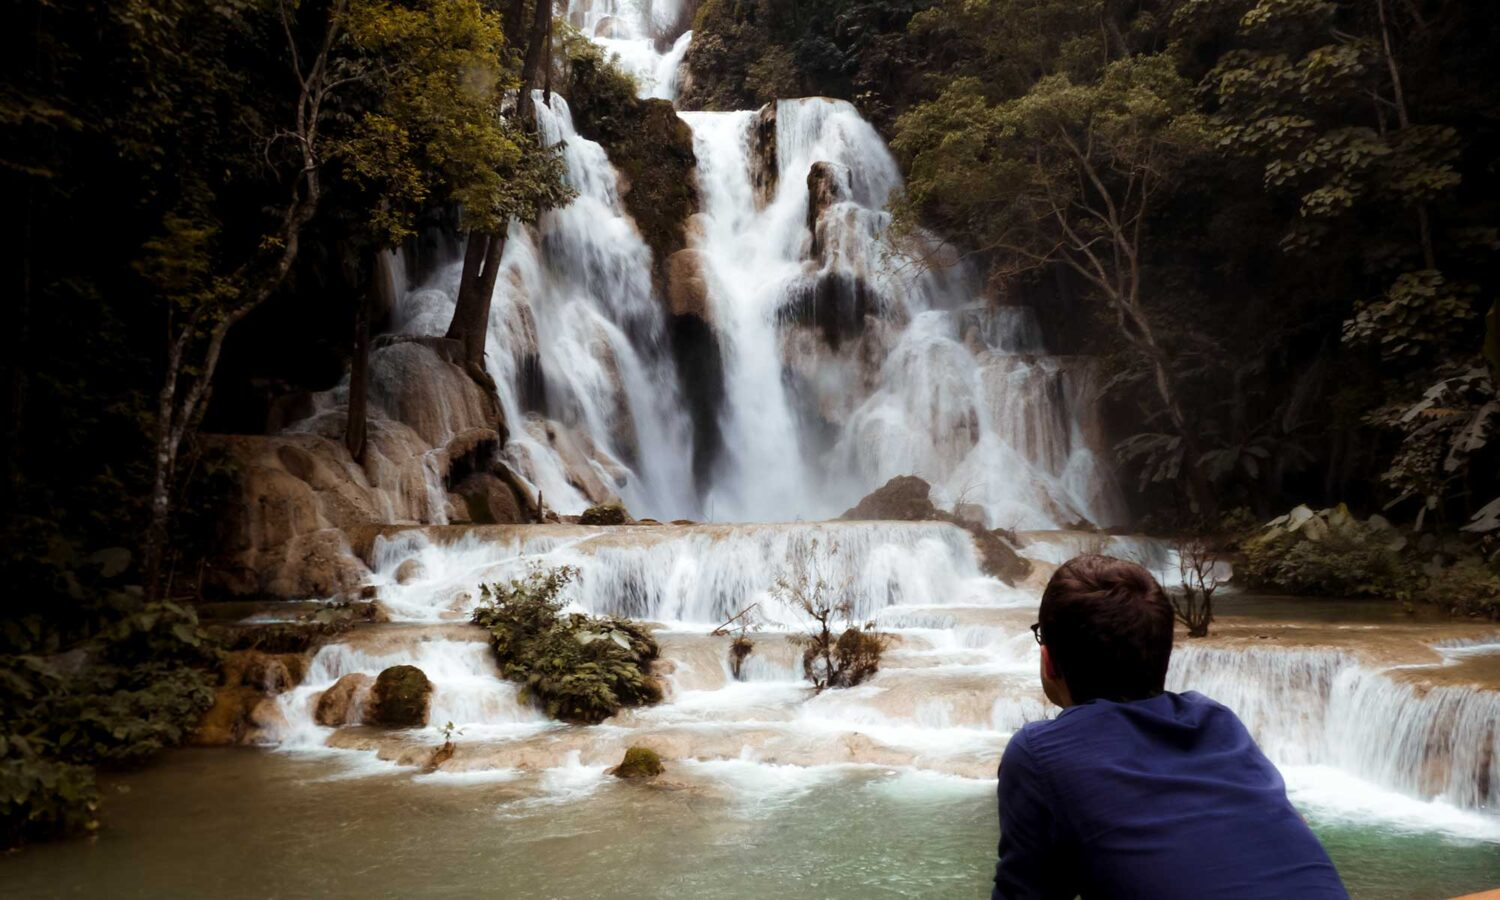 Getting a closer look at the Kuang Si Falls